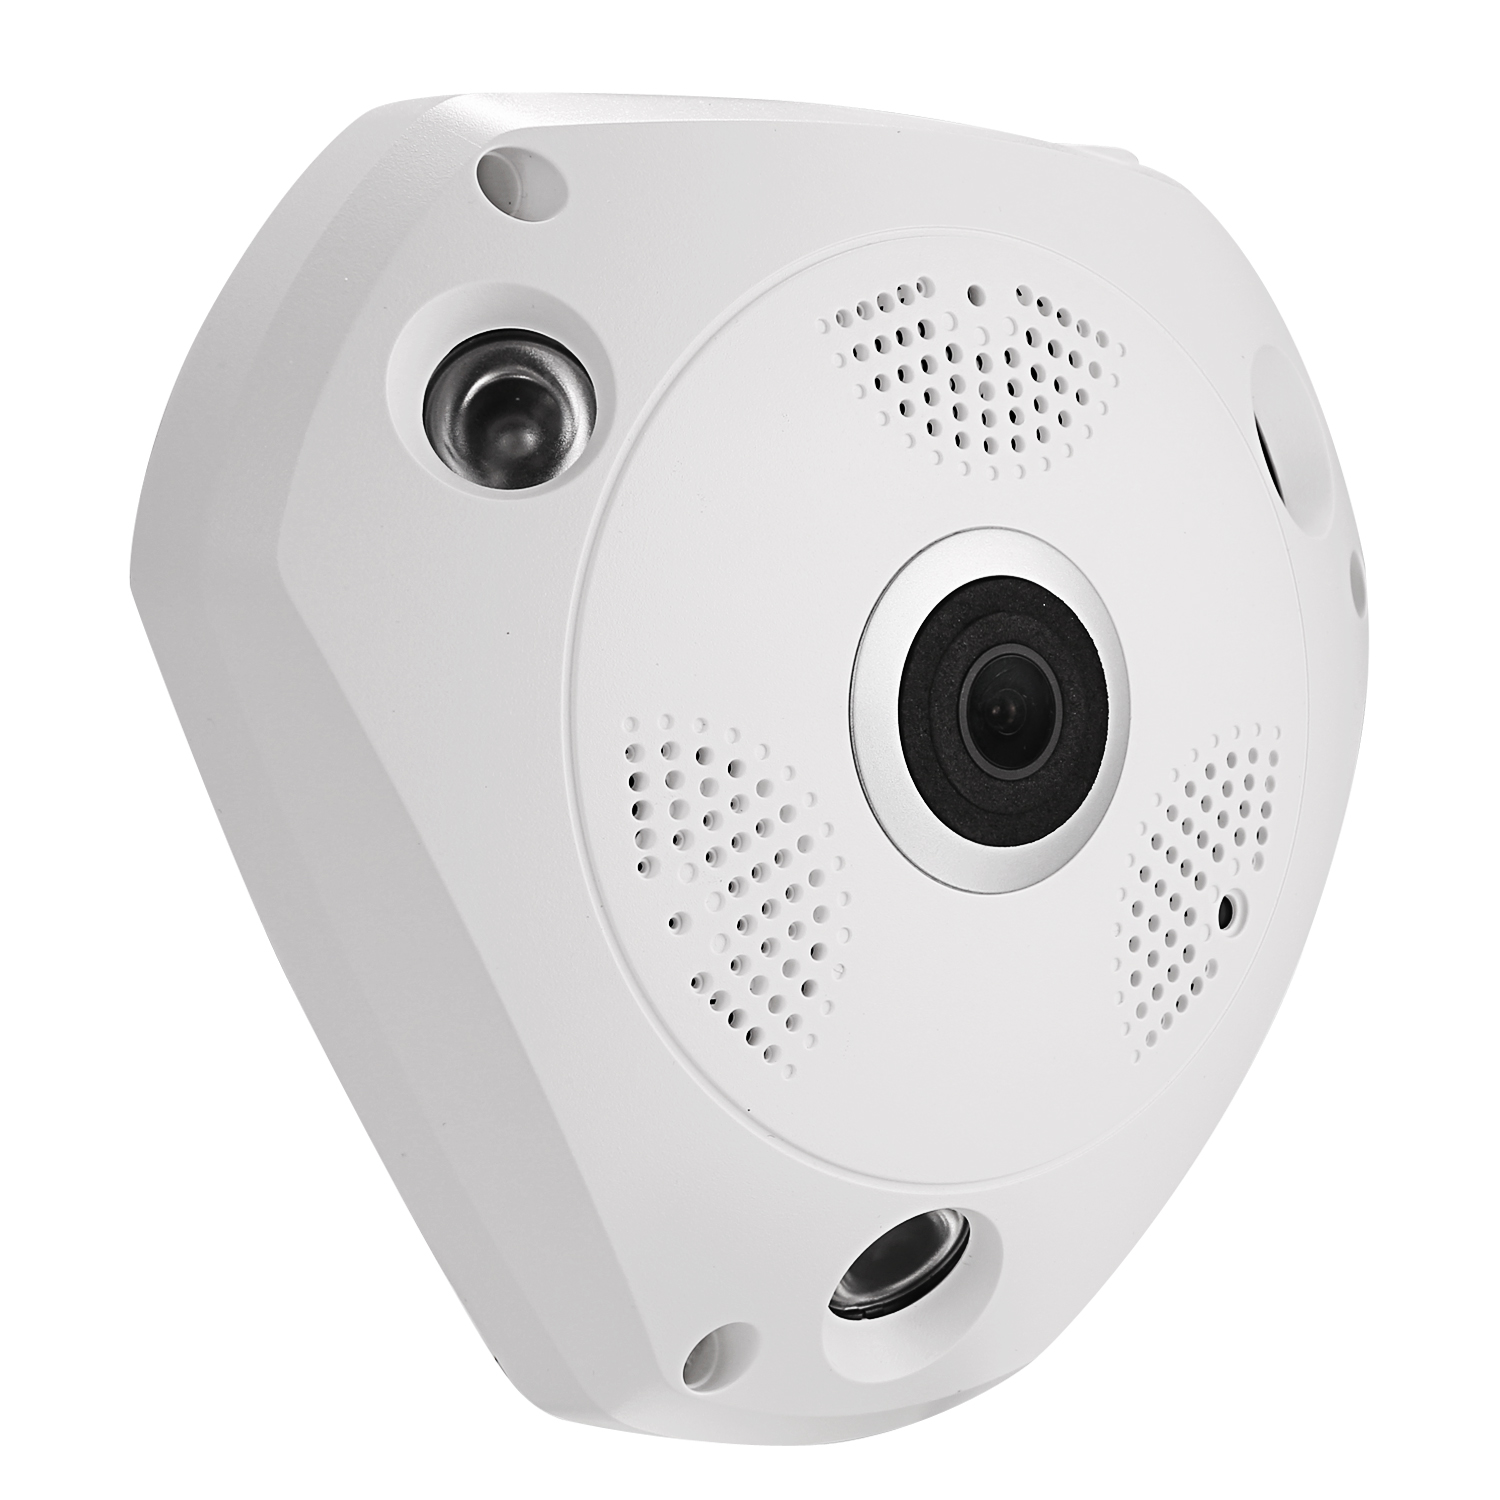 bosesh brand fisheye ip camera made in China